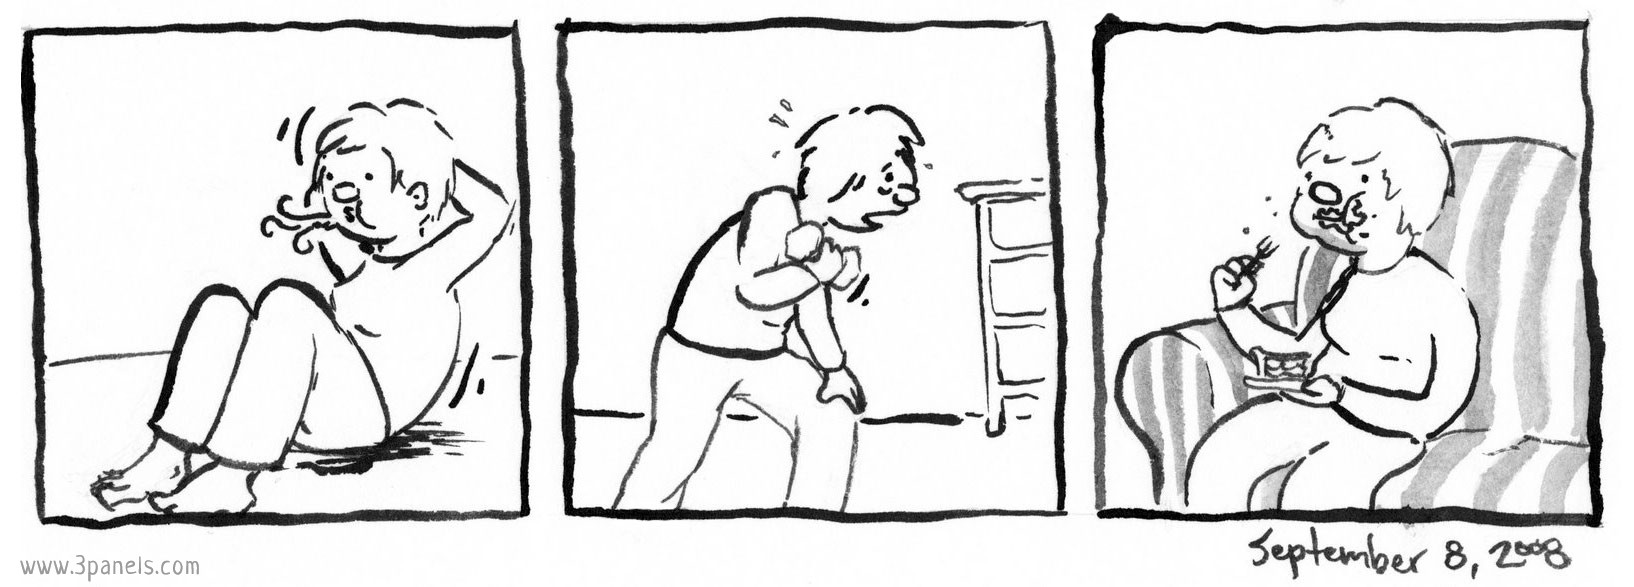 Panel 1: Dean does sit-ups. Panel 2: Dean lifts a dumbbell, sweating and looking exhausted. Panel 3: Dean sits on the couch and eats a slice of pie.